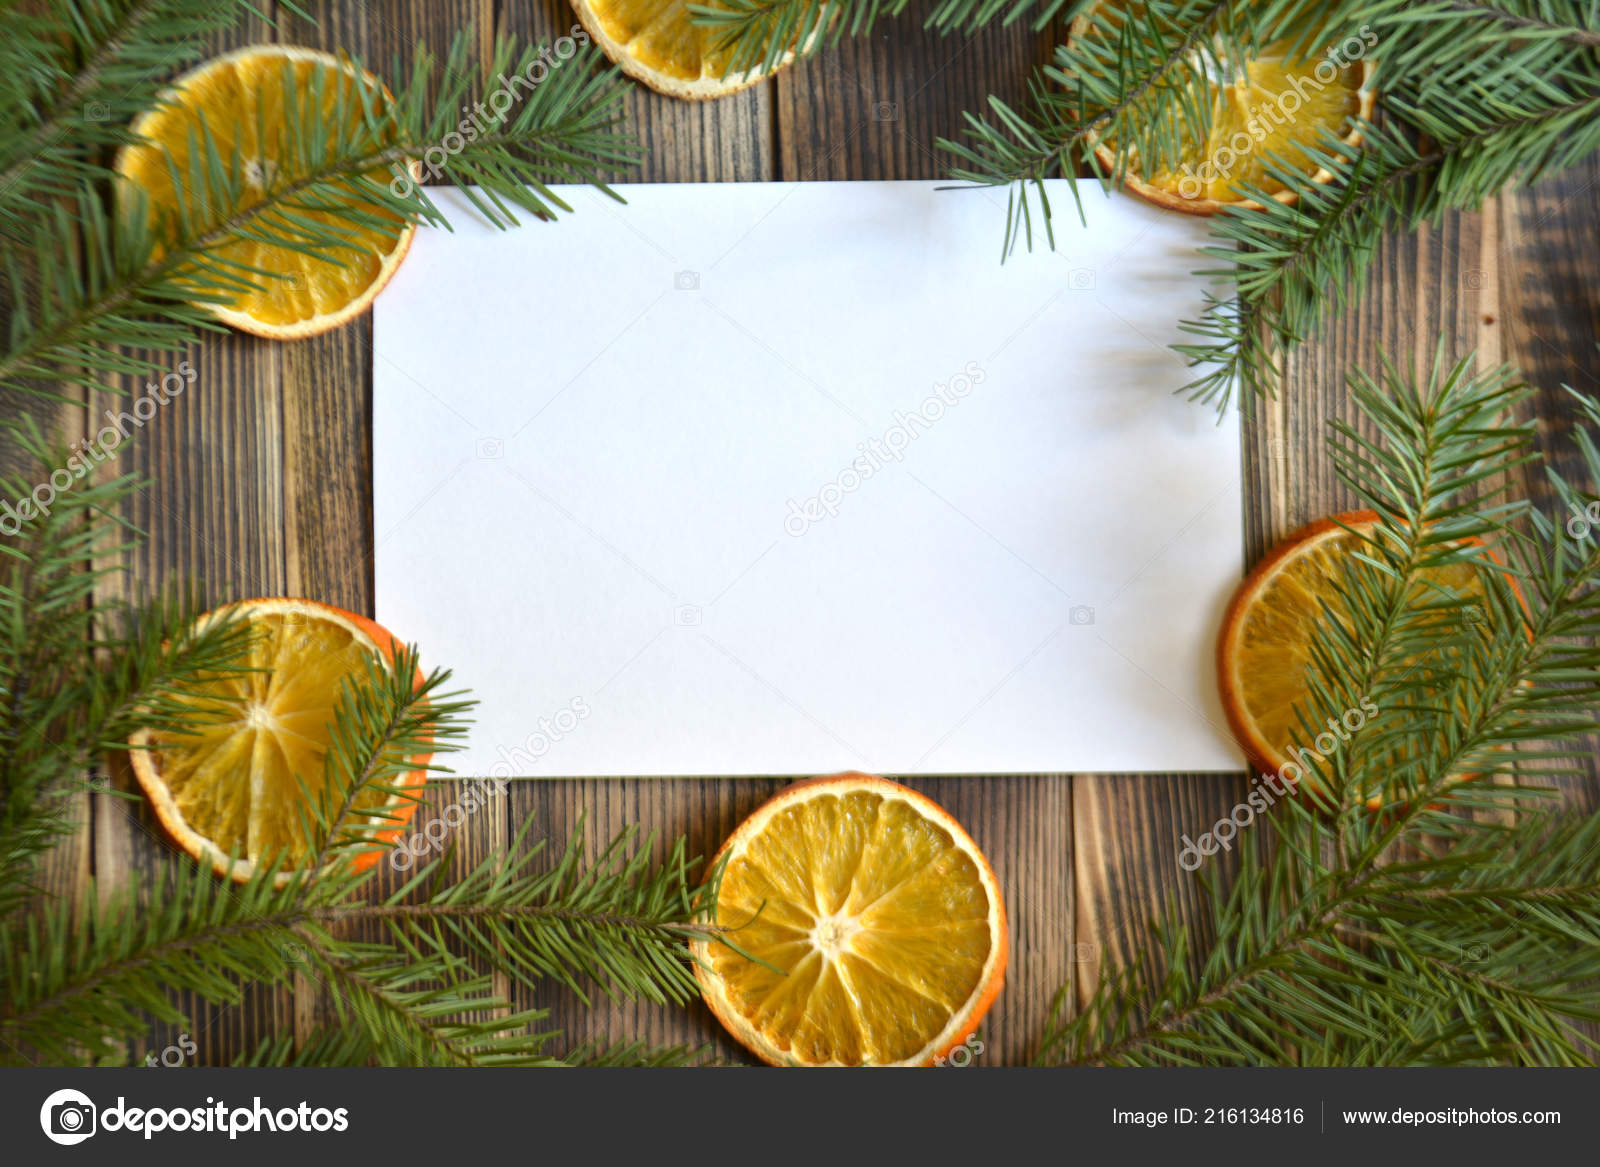 christmas and new year background pine branches and dried oranges photo by mvolkova